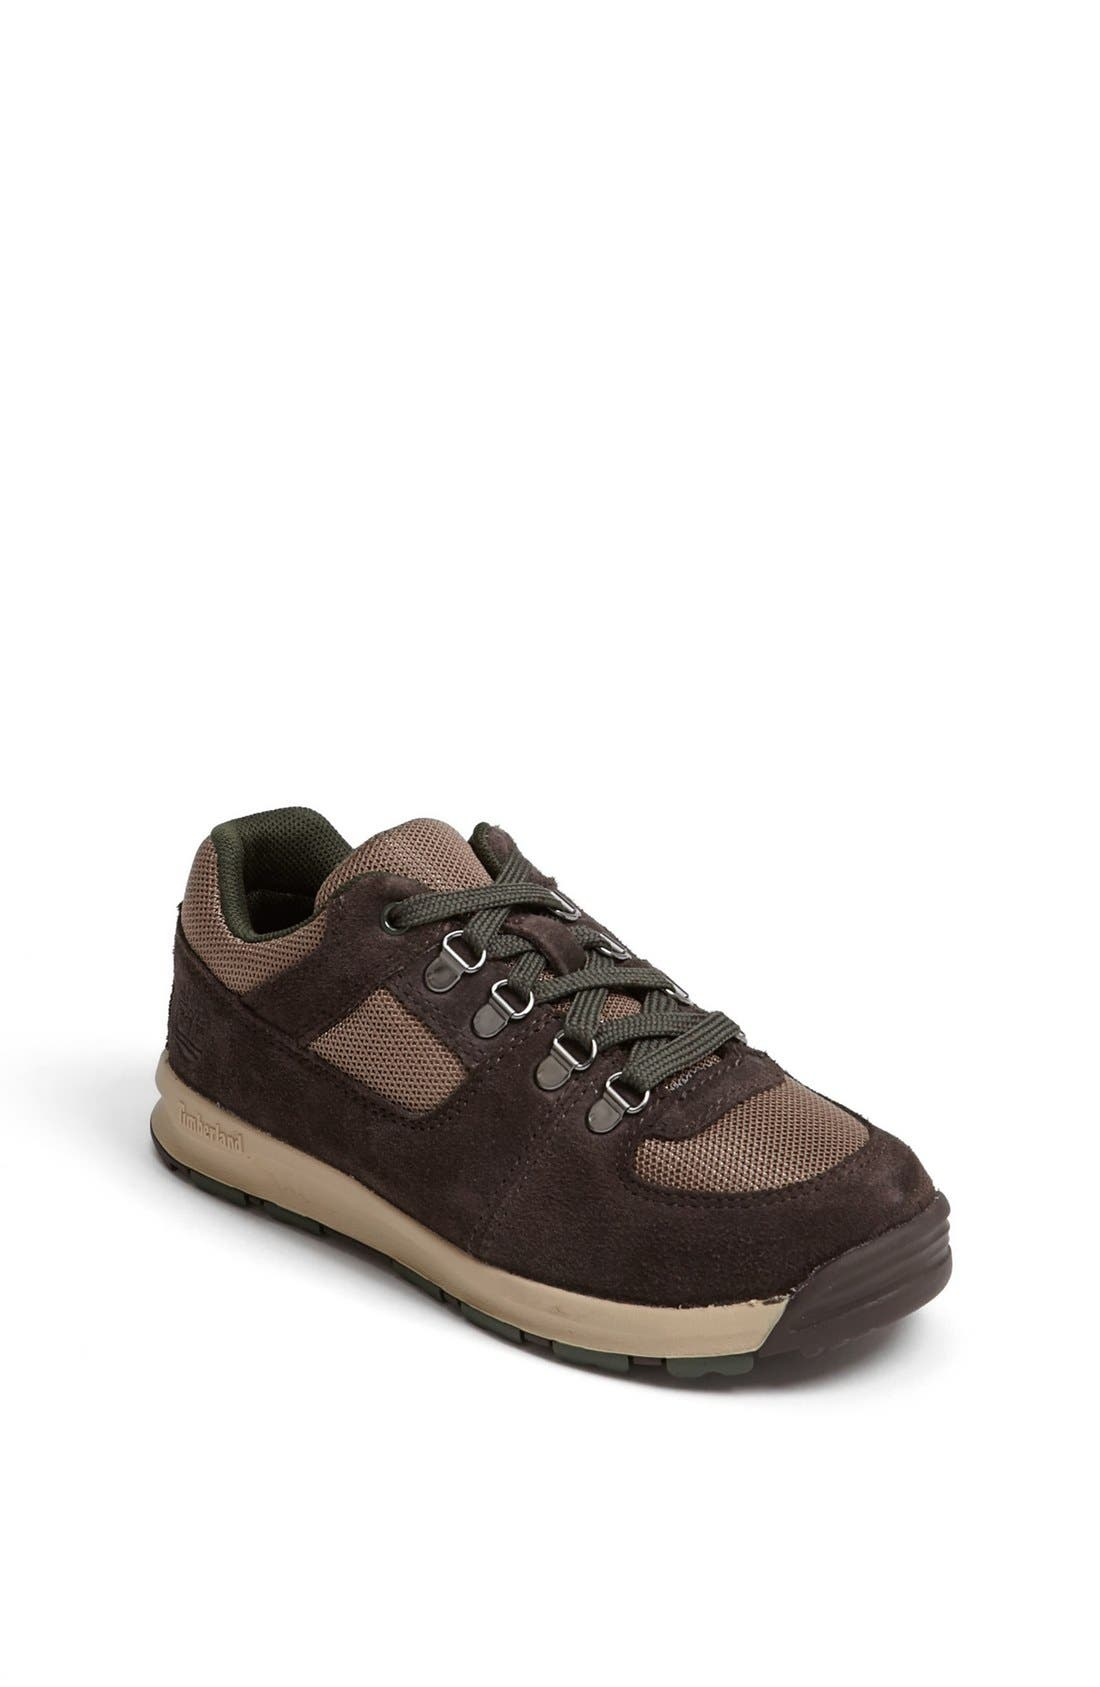 Alternate Image 1 Selected - Timberland Earthkeepers® 'GT Scramble' Low Boot (Toddler, Little Kid & Big Kid)